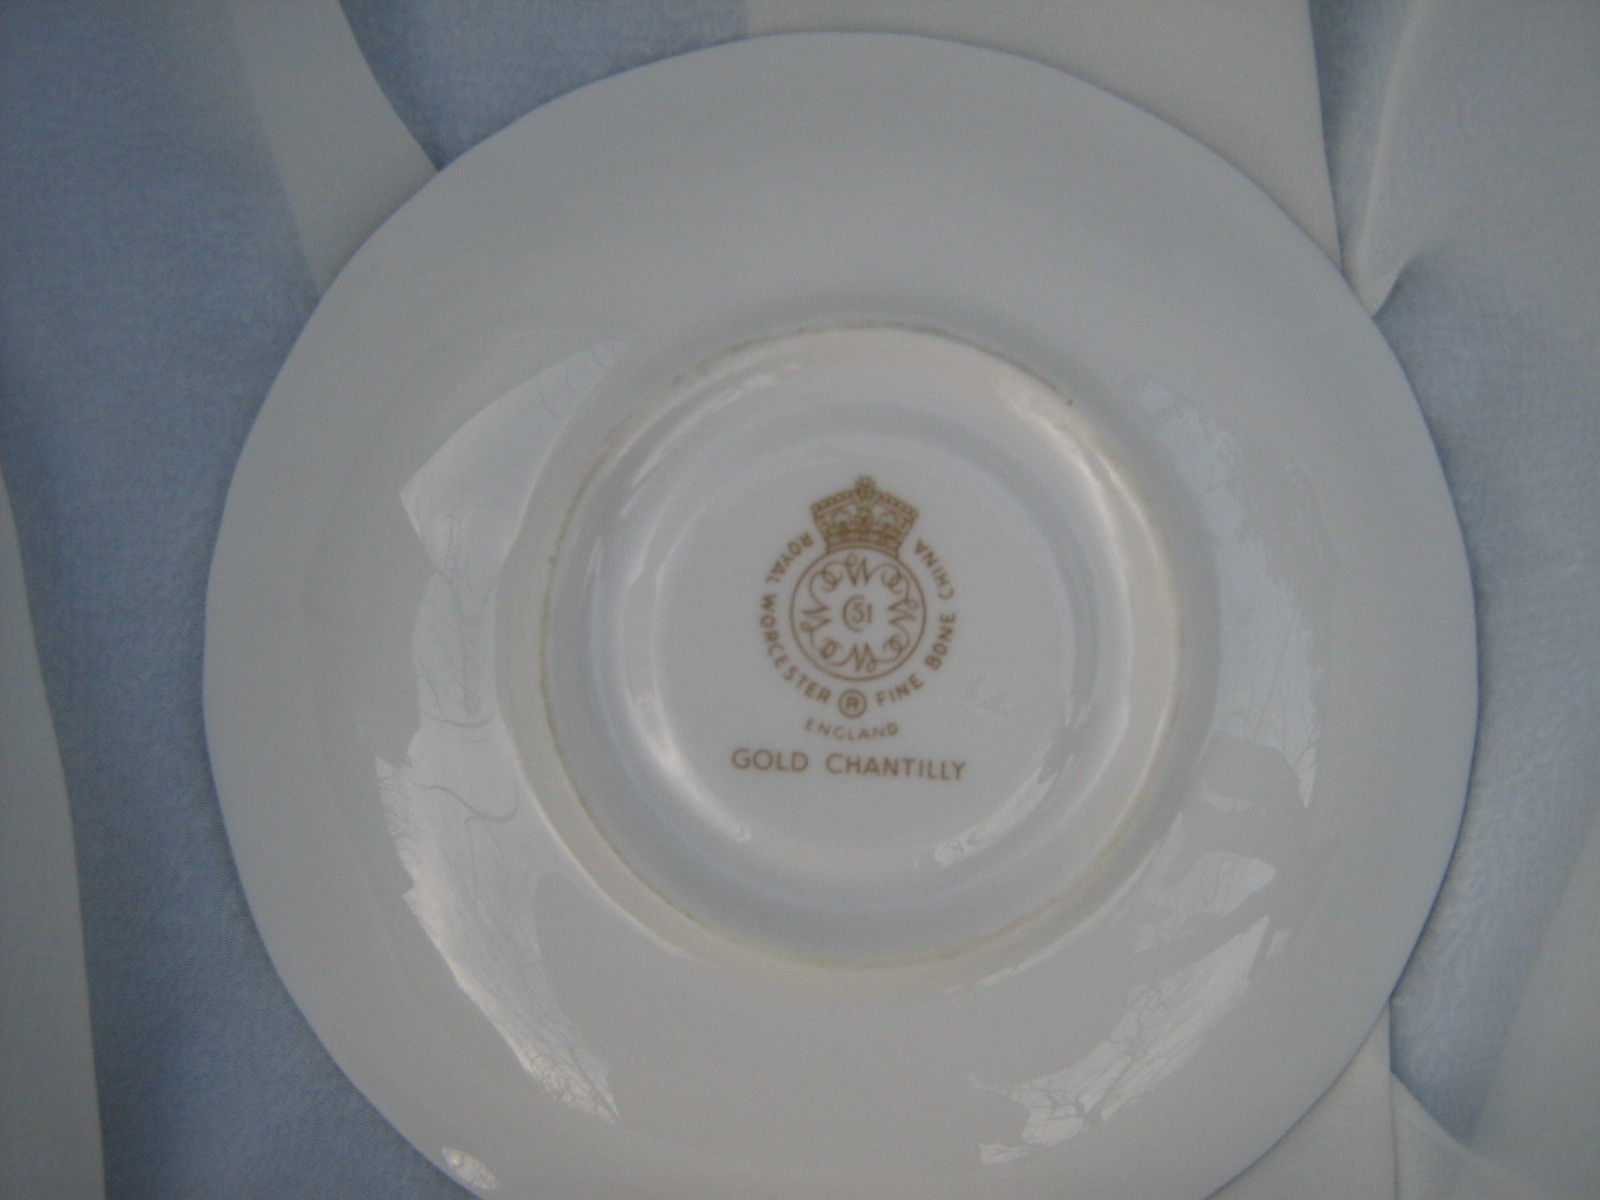 Royal Worcester,Gold Chantilly, Cup and Saucer, Wavy Rim,England Fine Bone China